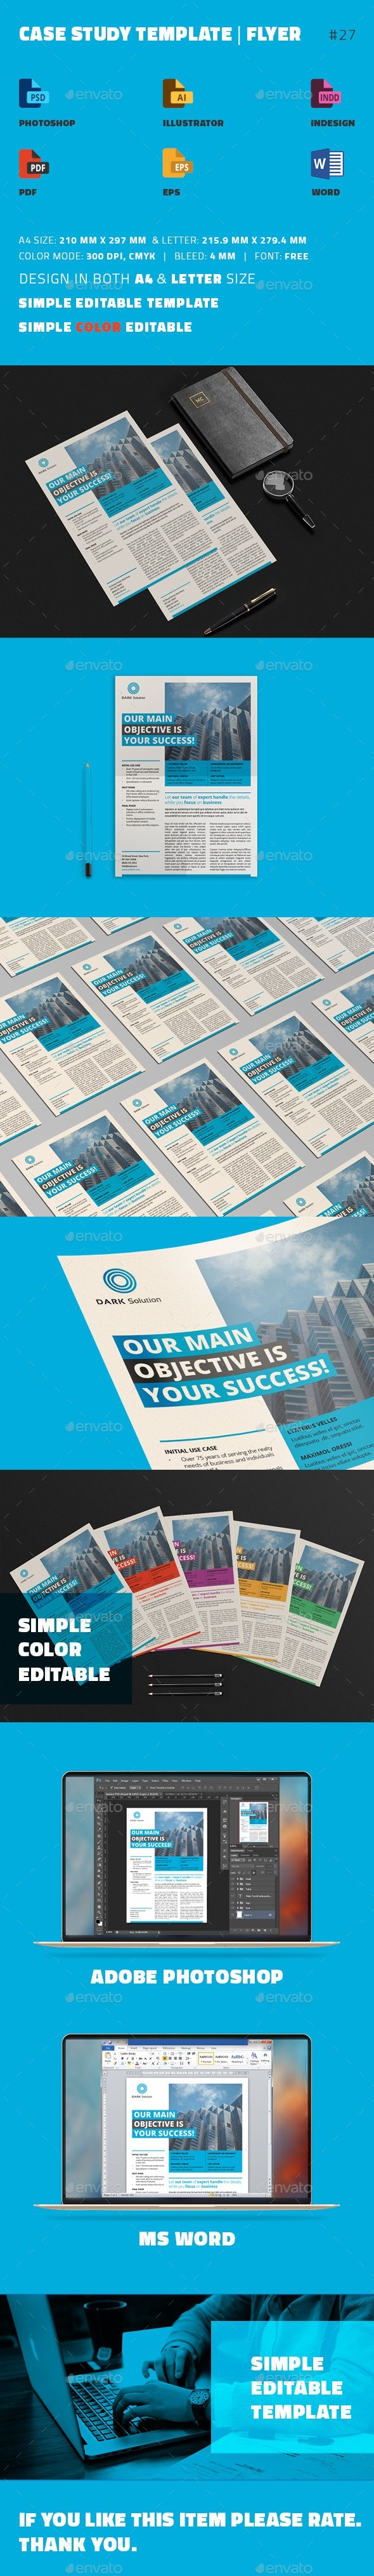 Case Study Template | Flyer by sanlife | GraphicRiver